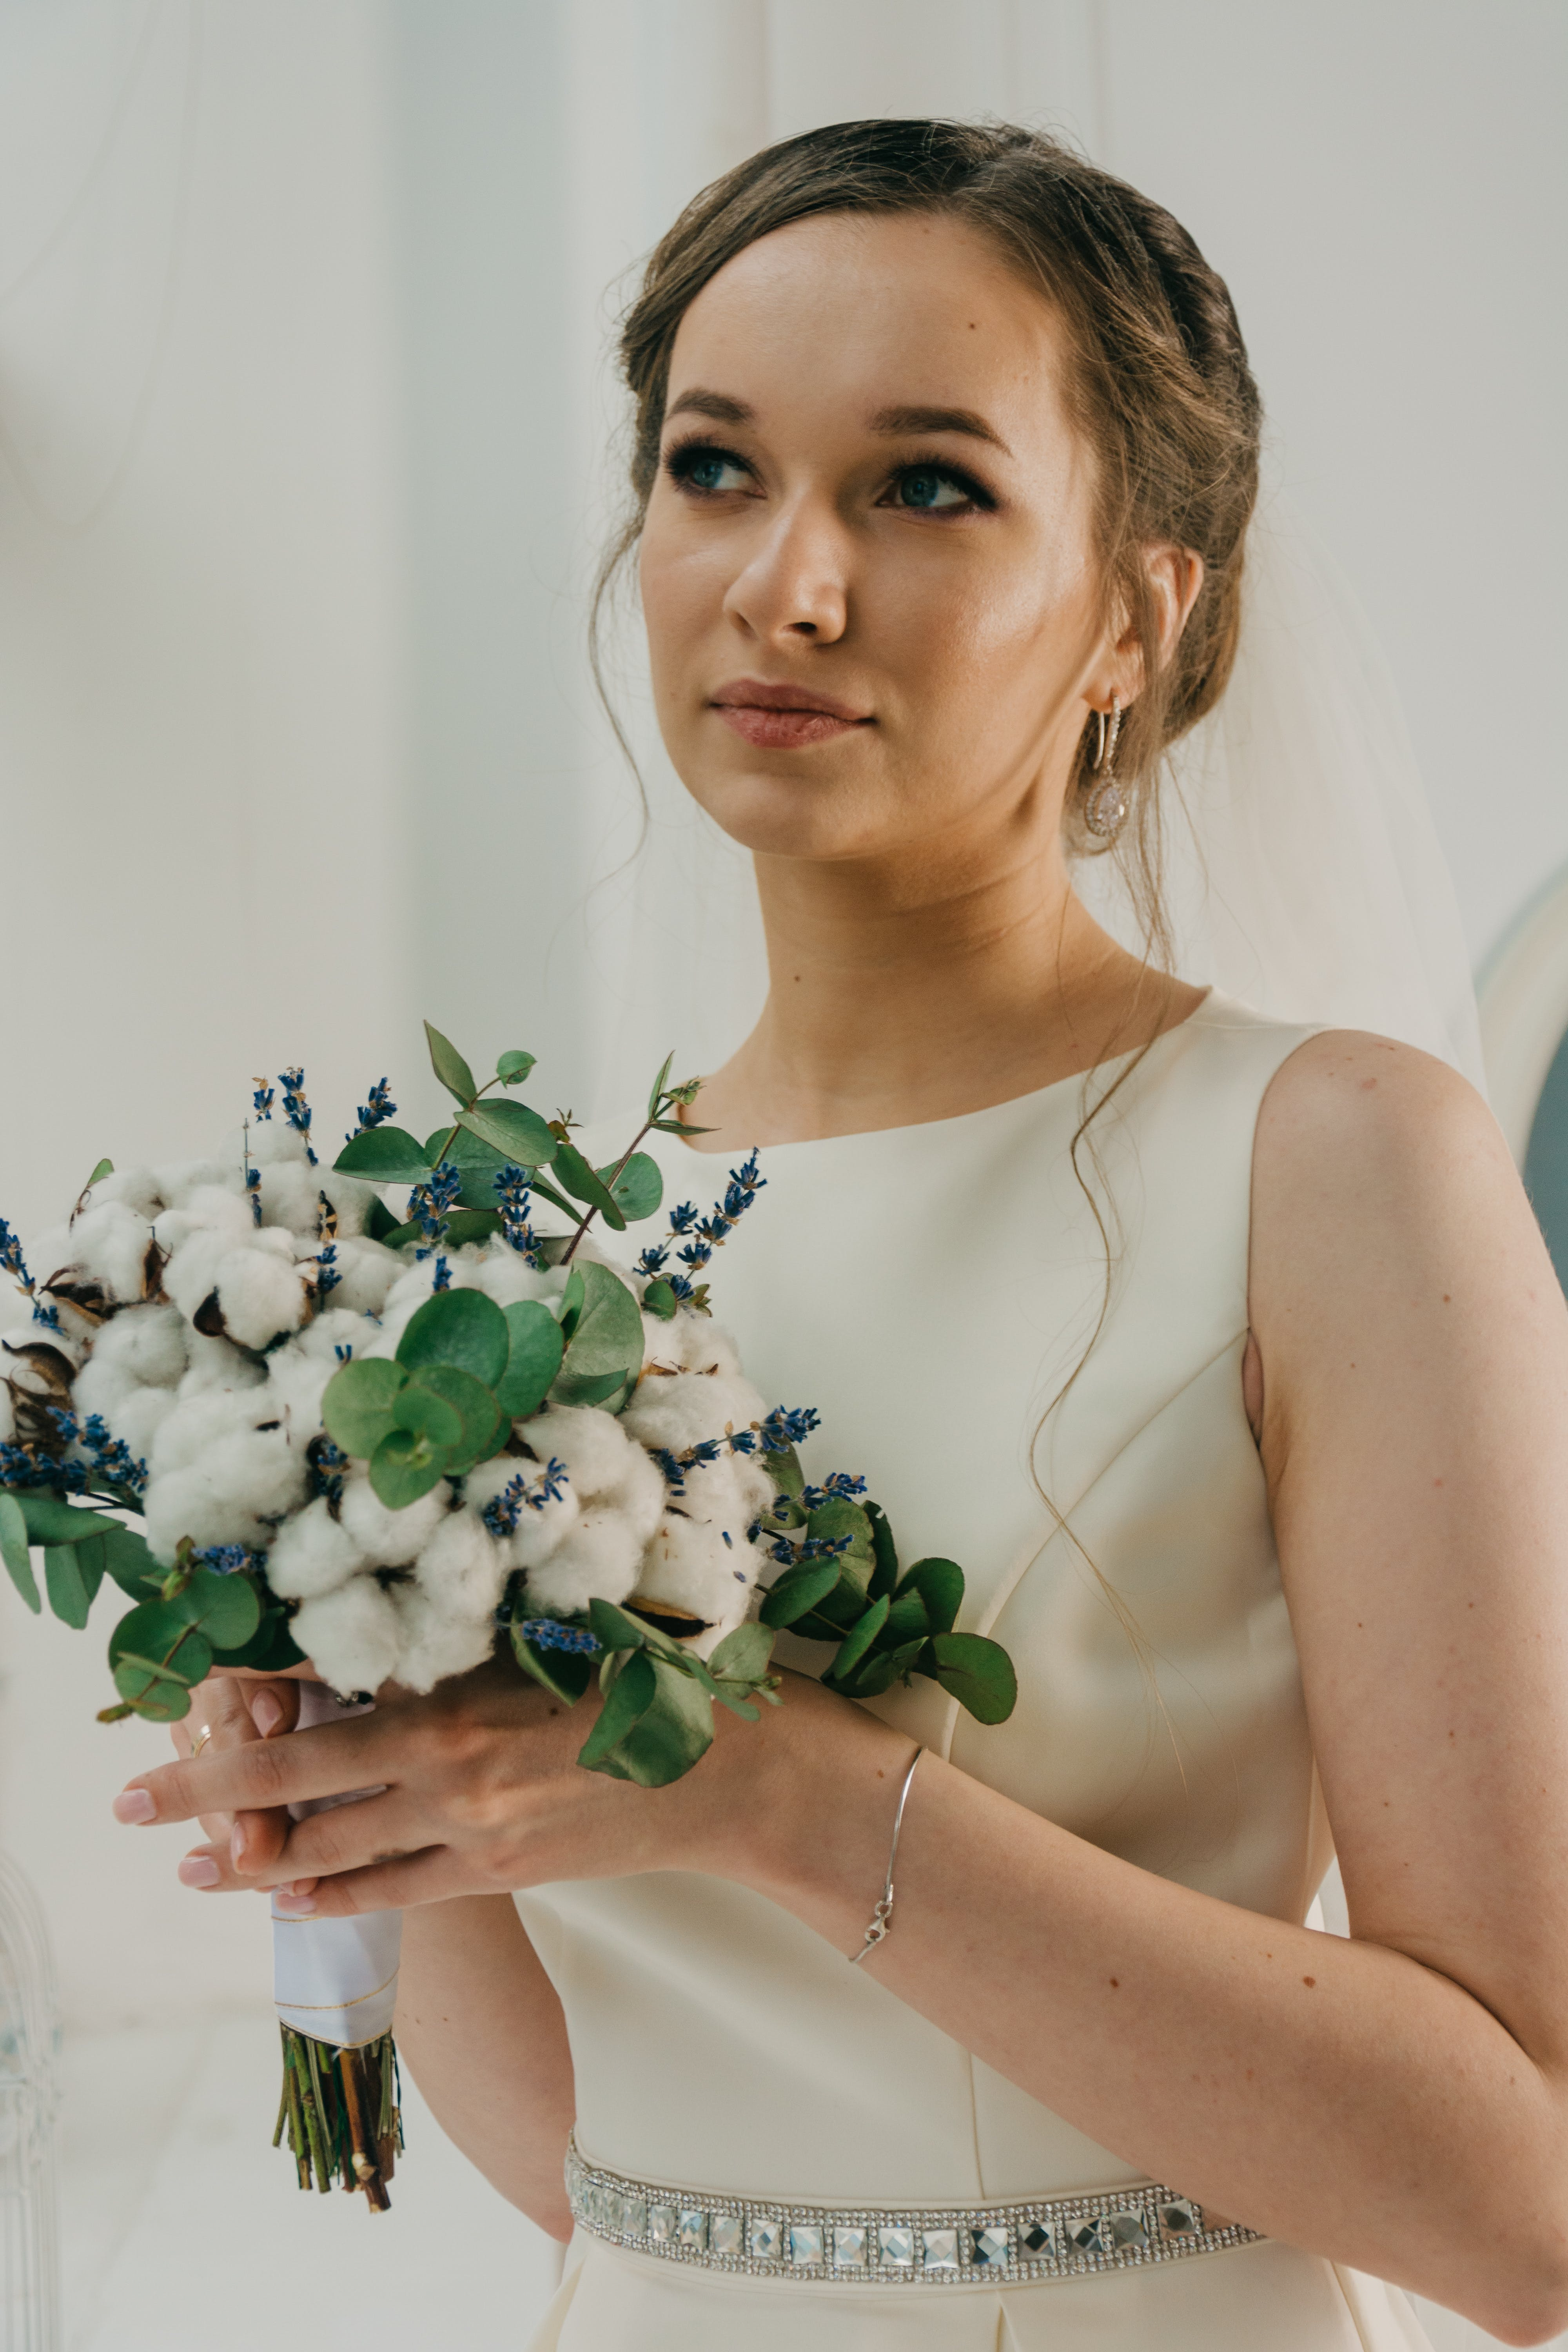 Woman Wearing White Gown Holding Bouquet of Flowers